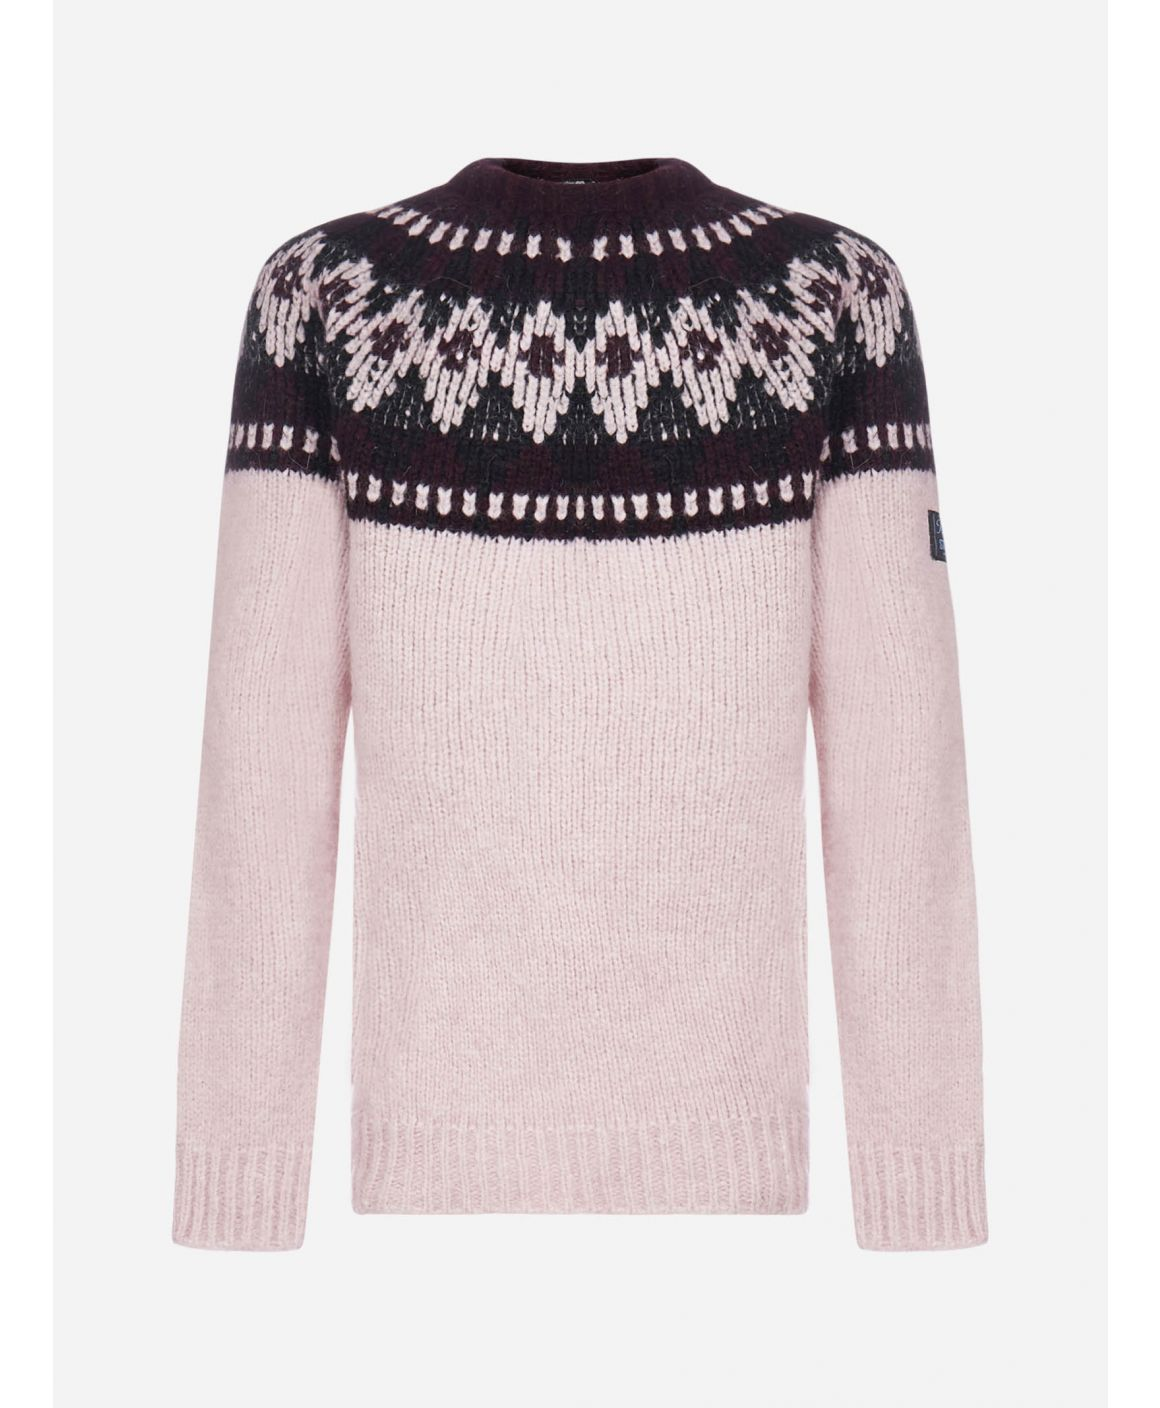 Alpaca and wool jacquard sweater